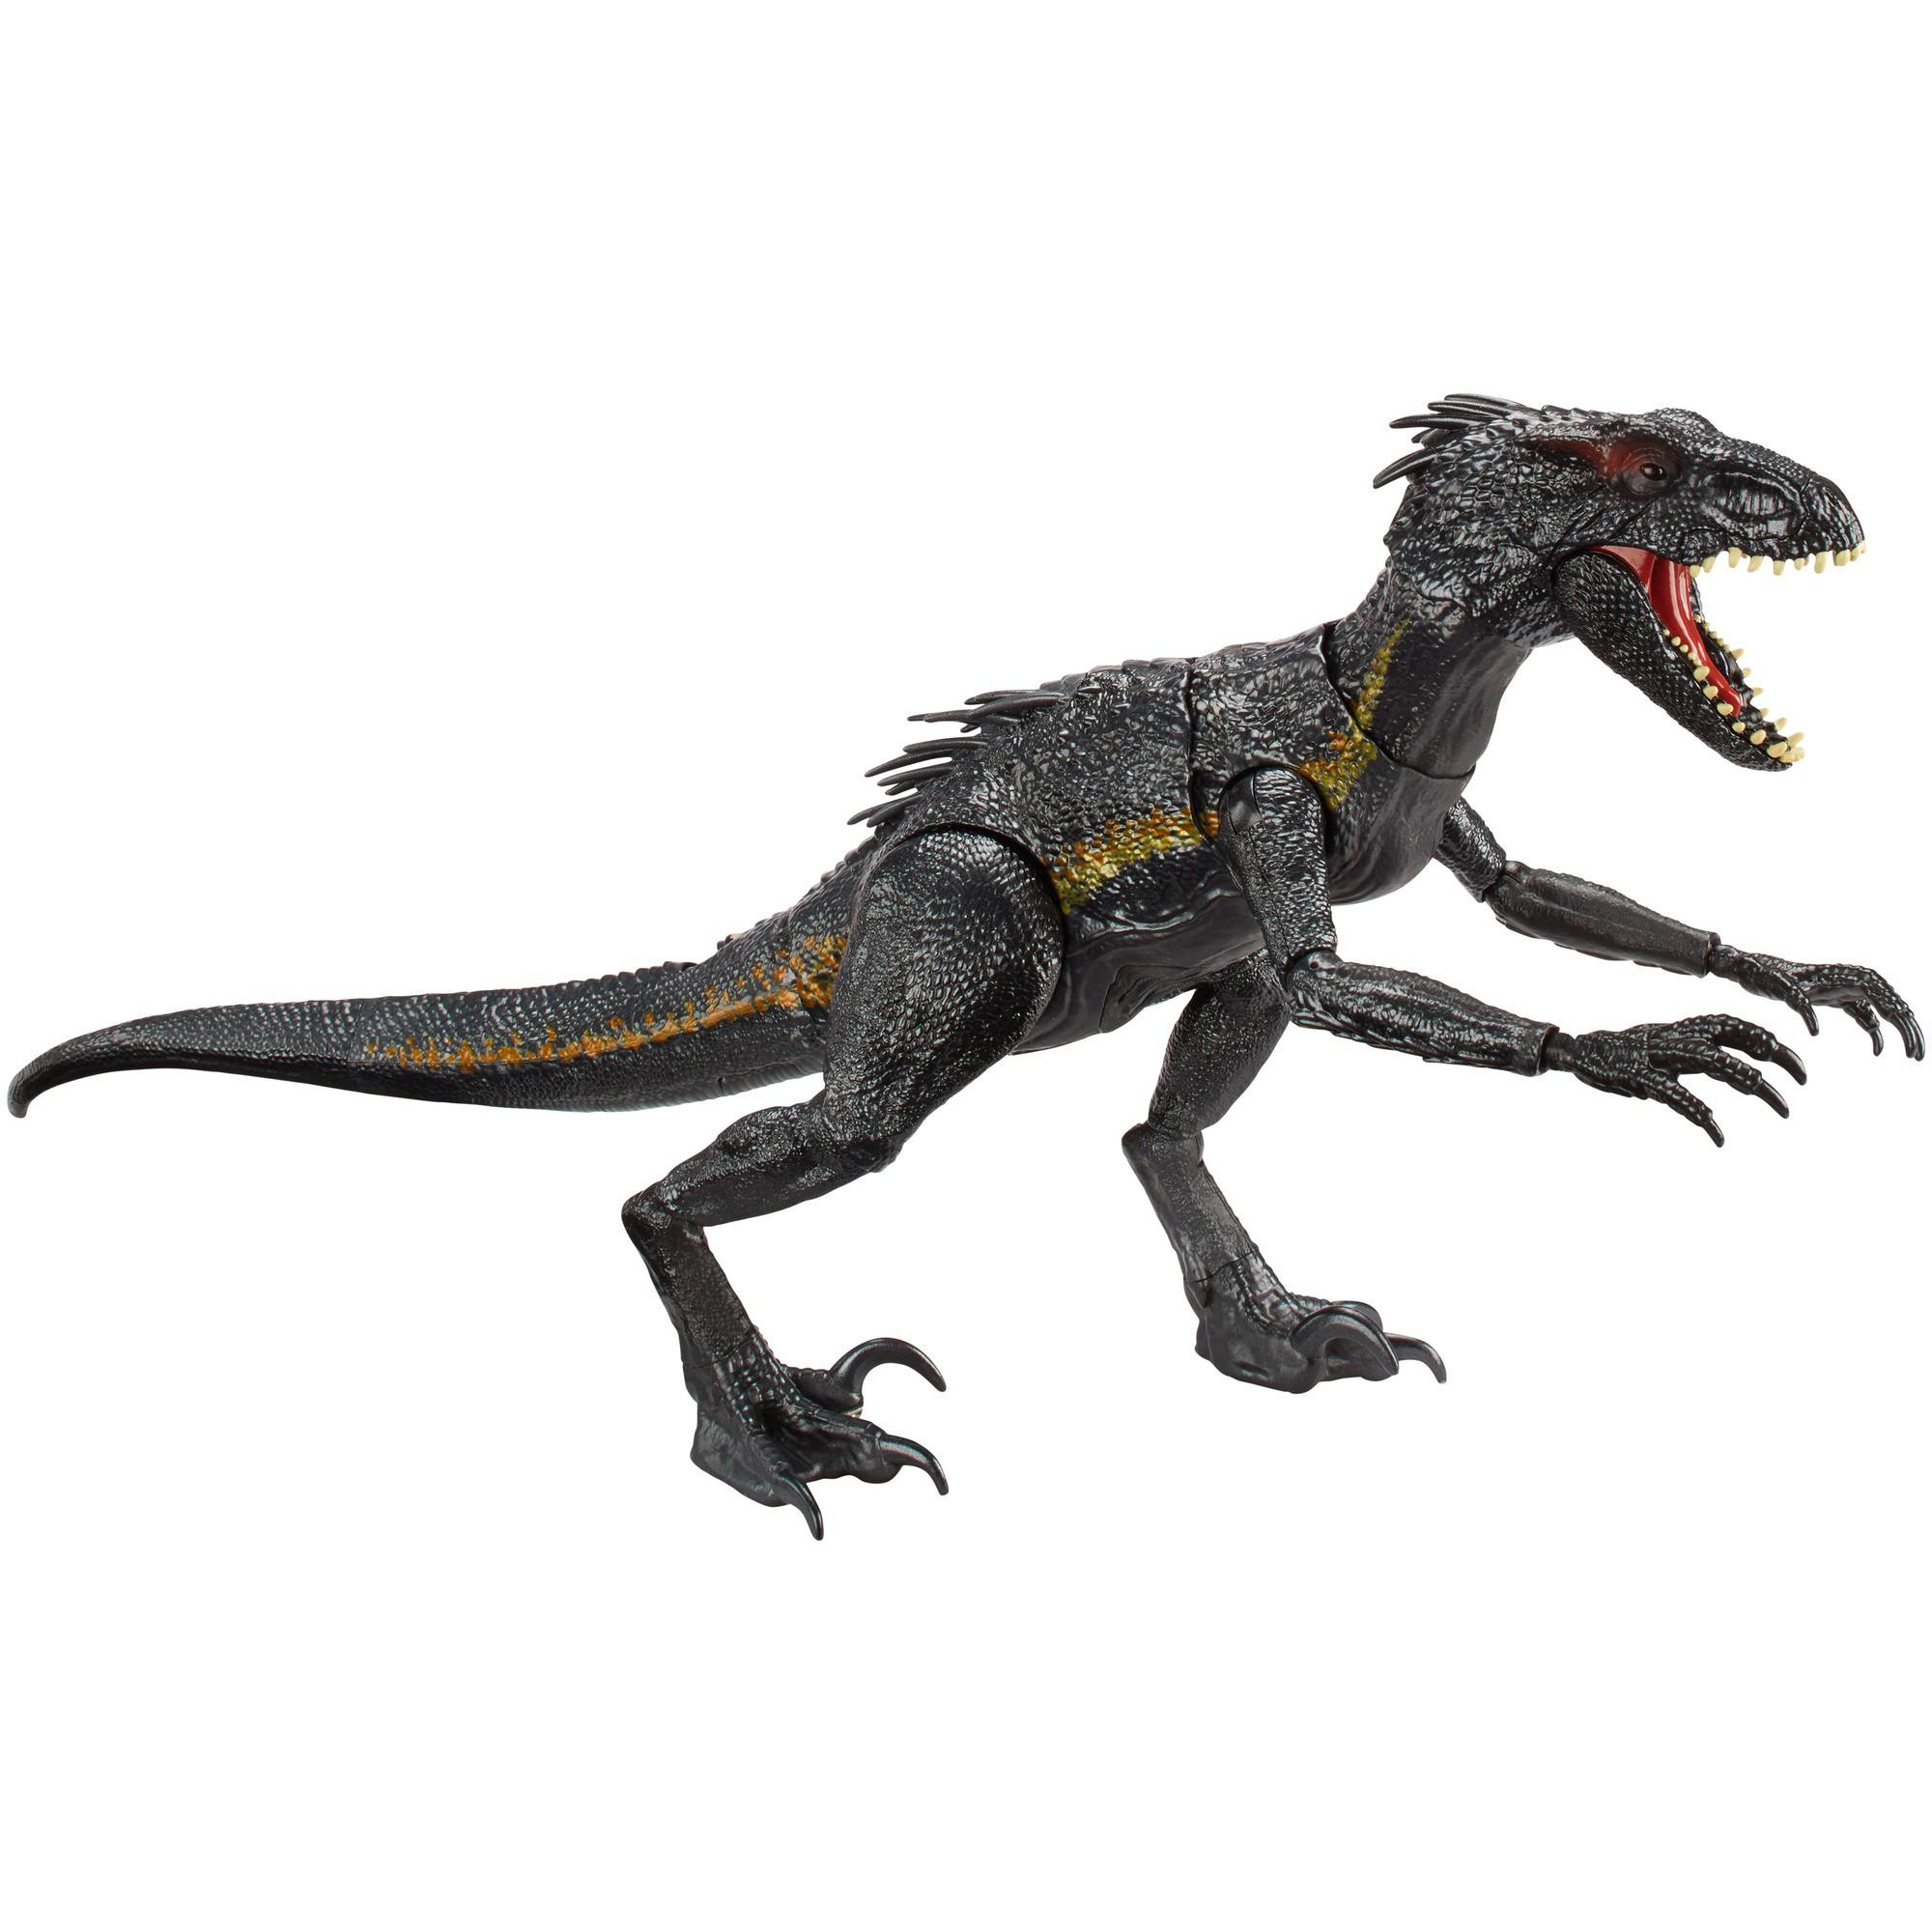 Jurassic World Grab 'N Growl Indoraptor Dinosaur Figure by Mattel